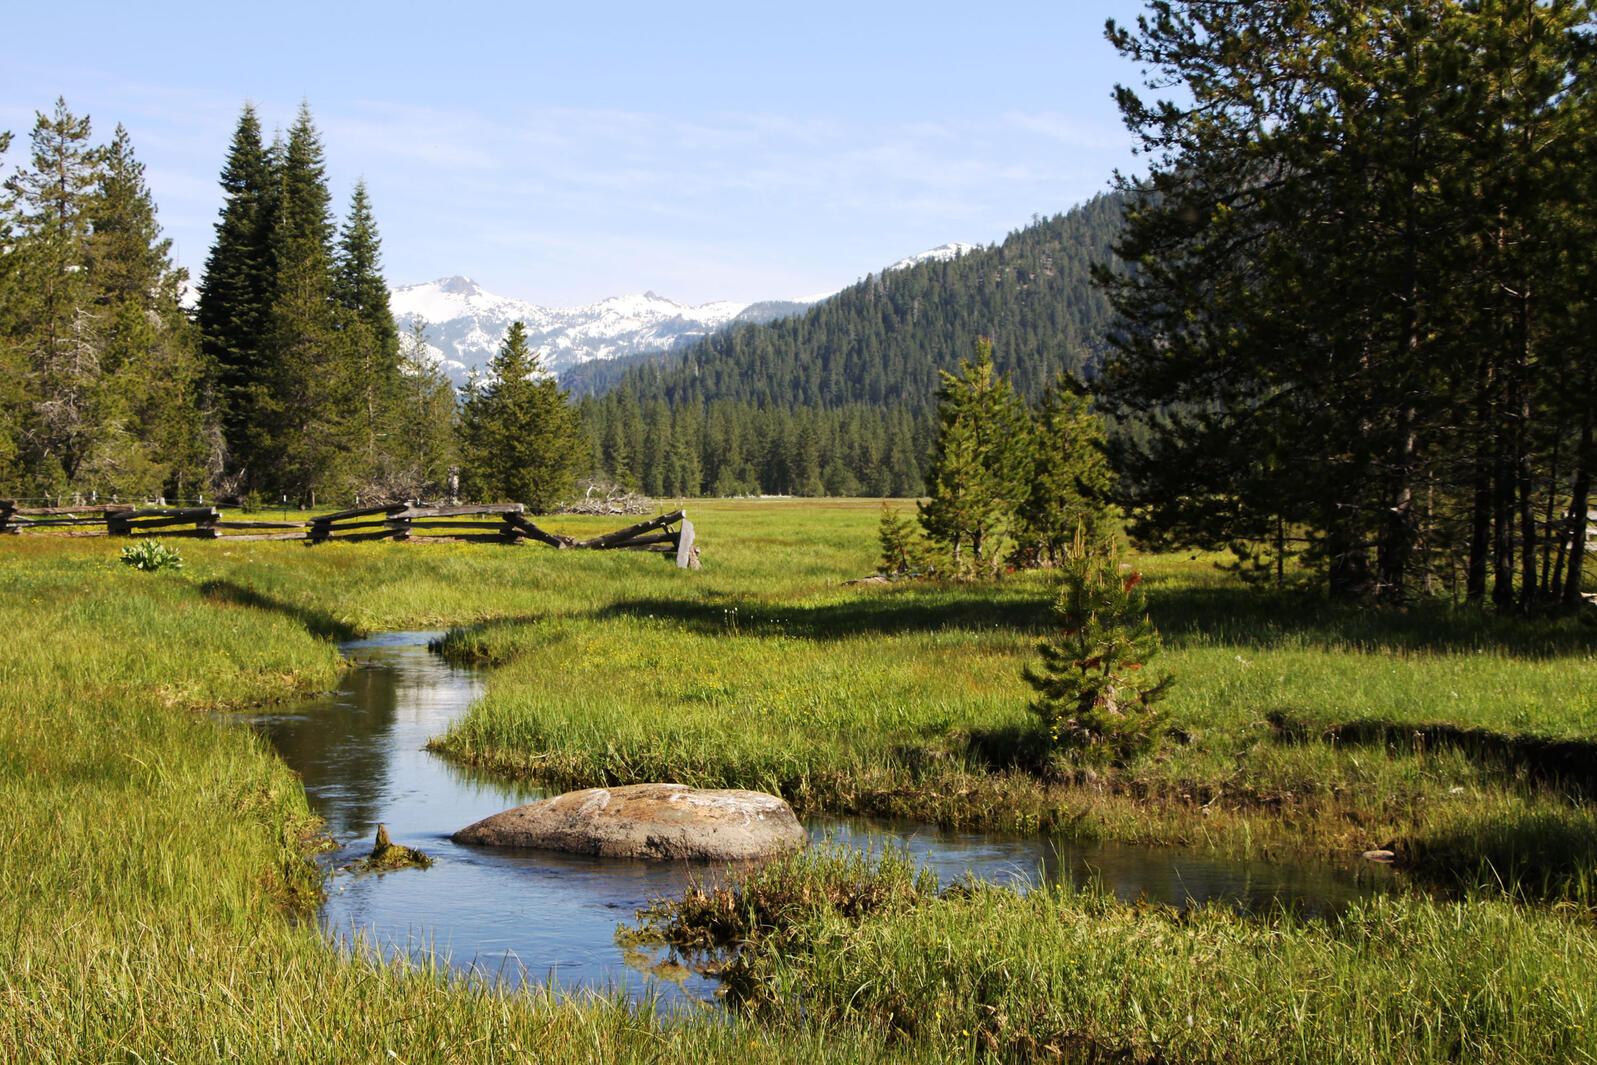 Framed by 9,000-foot peaks in Lassen Volcanic National Park, Gurnsey Creek flows through Childs Meadow, which is being restored to understand how wetlands capture and store carbon. Jane Braxton Little